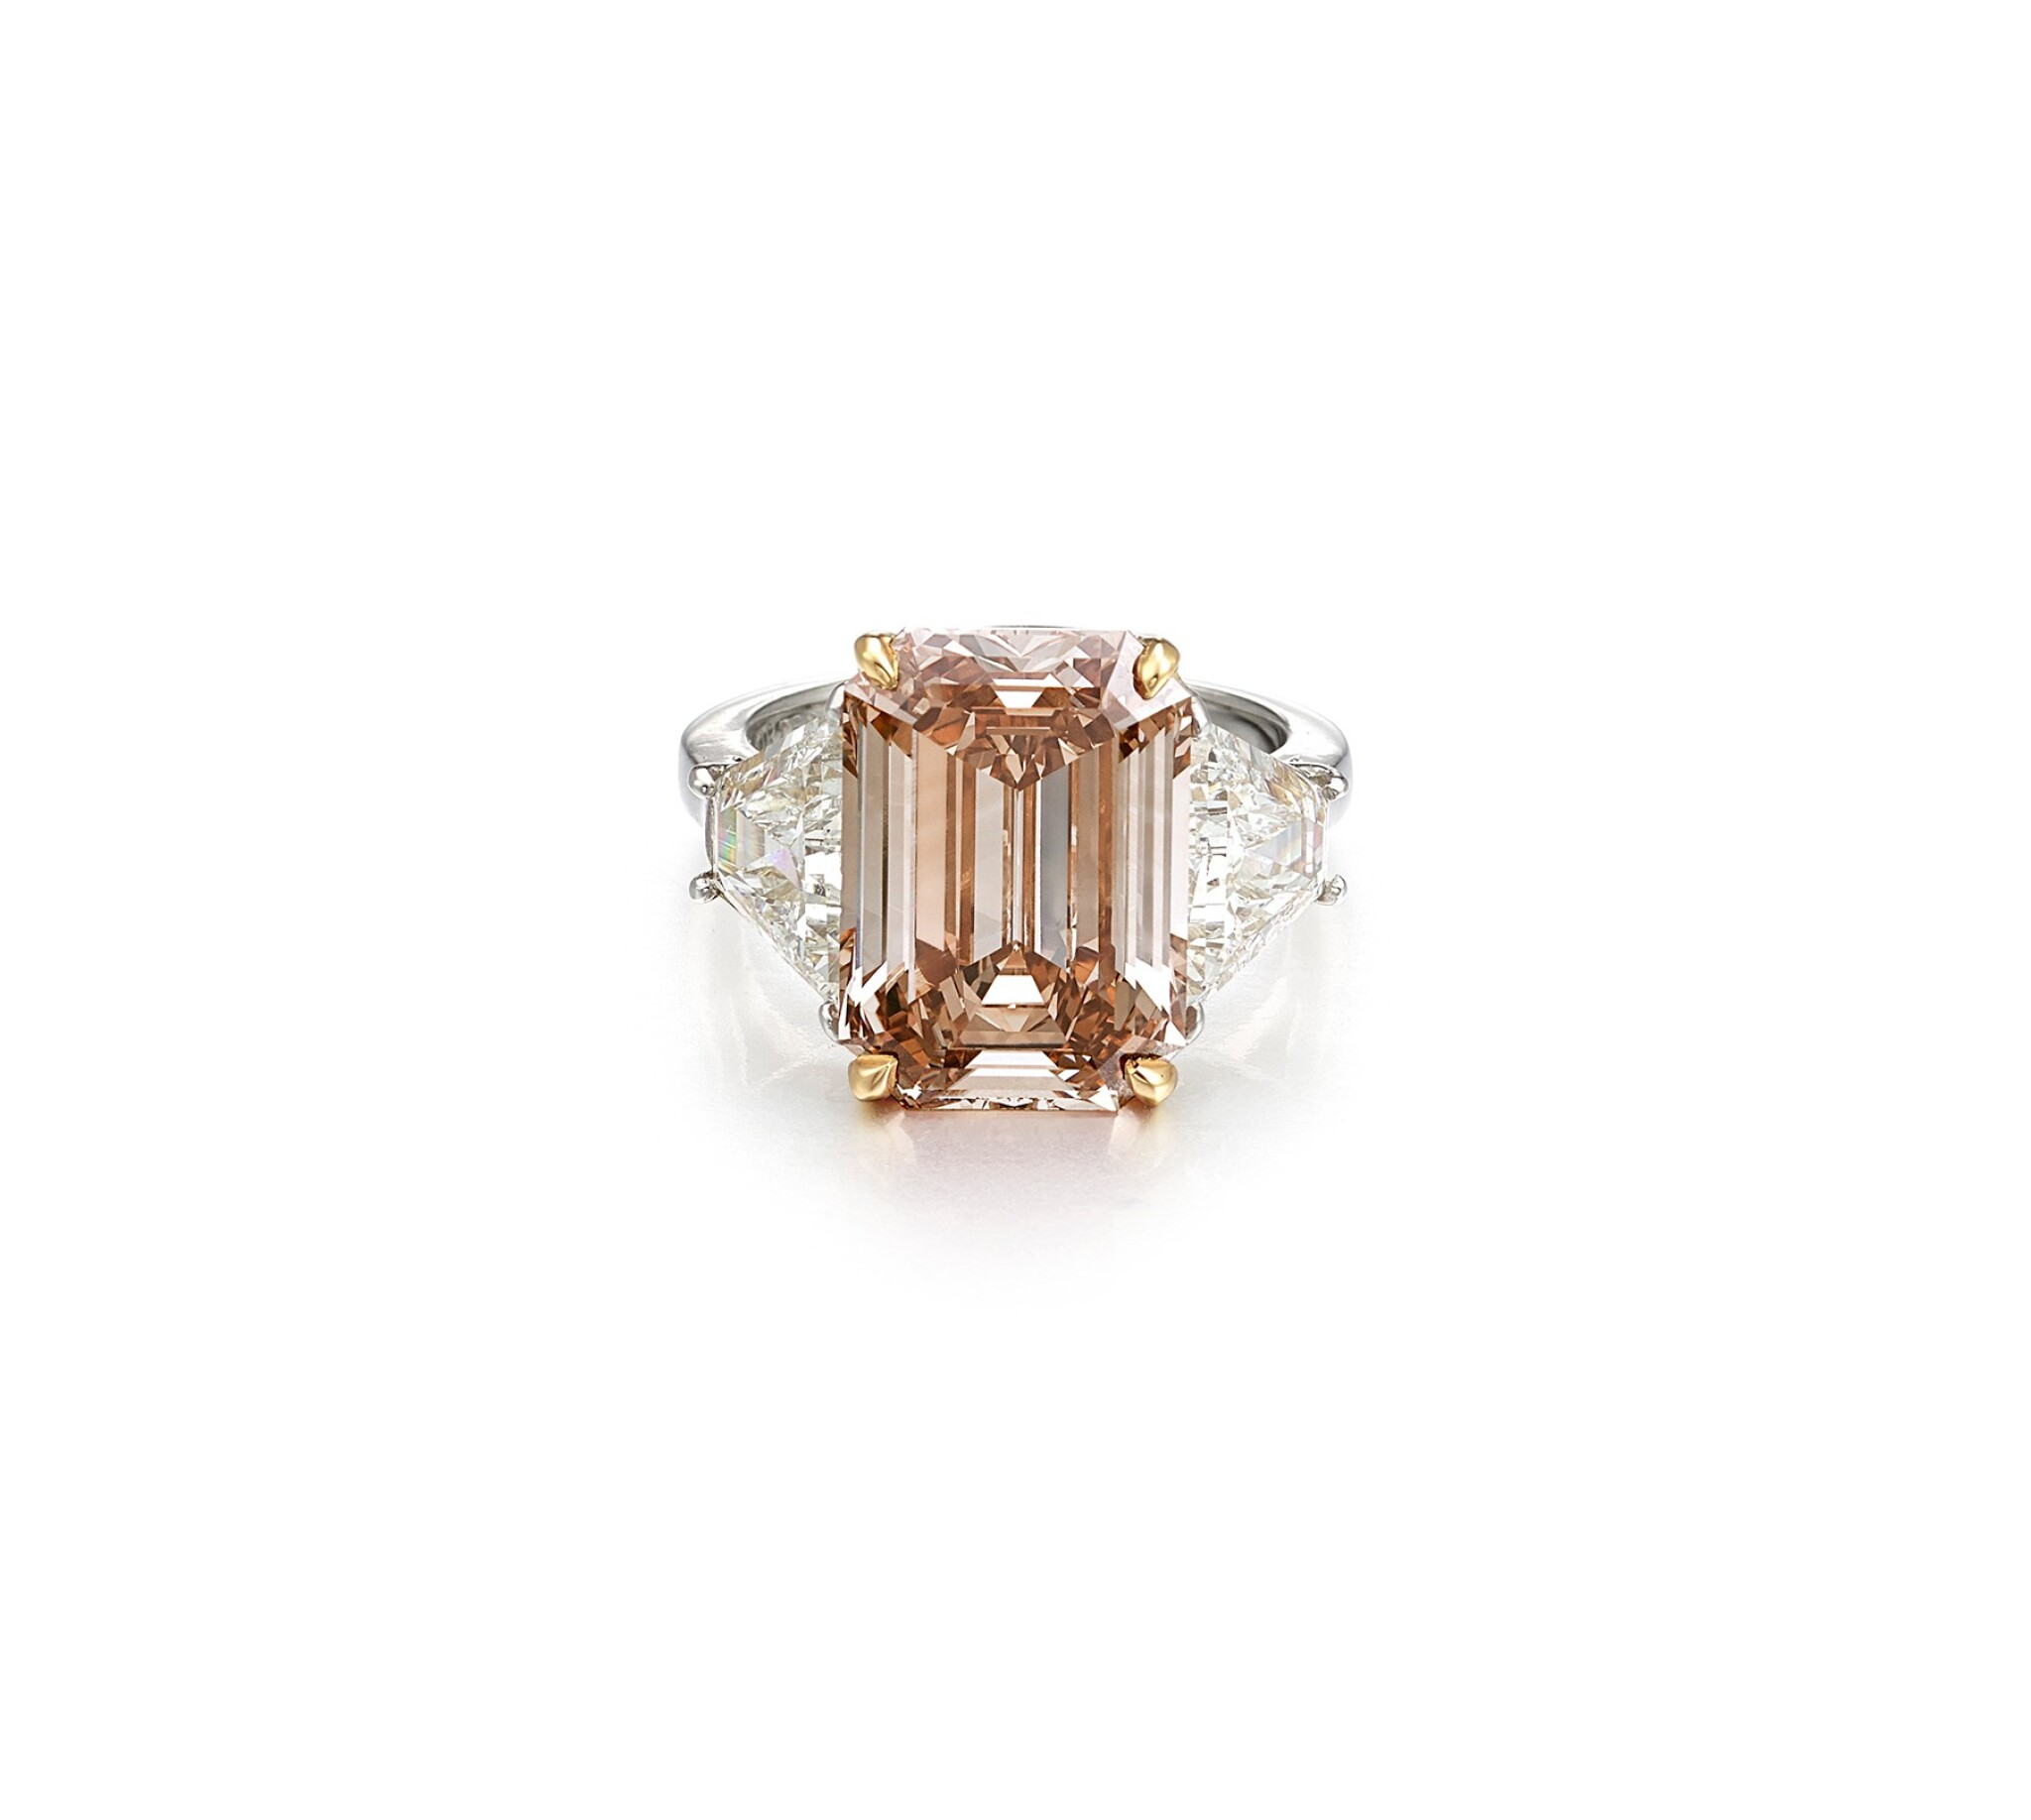 View full screen - View 1 of Lot 1636. BULGARI | FANCY DEEP BROWN-PINK DIAMOND AND DIAMOND RING | 寶格麗 | 8.50卡拉 深彩棕粉紅色 鑽石 配 鑽石 戒指.